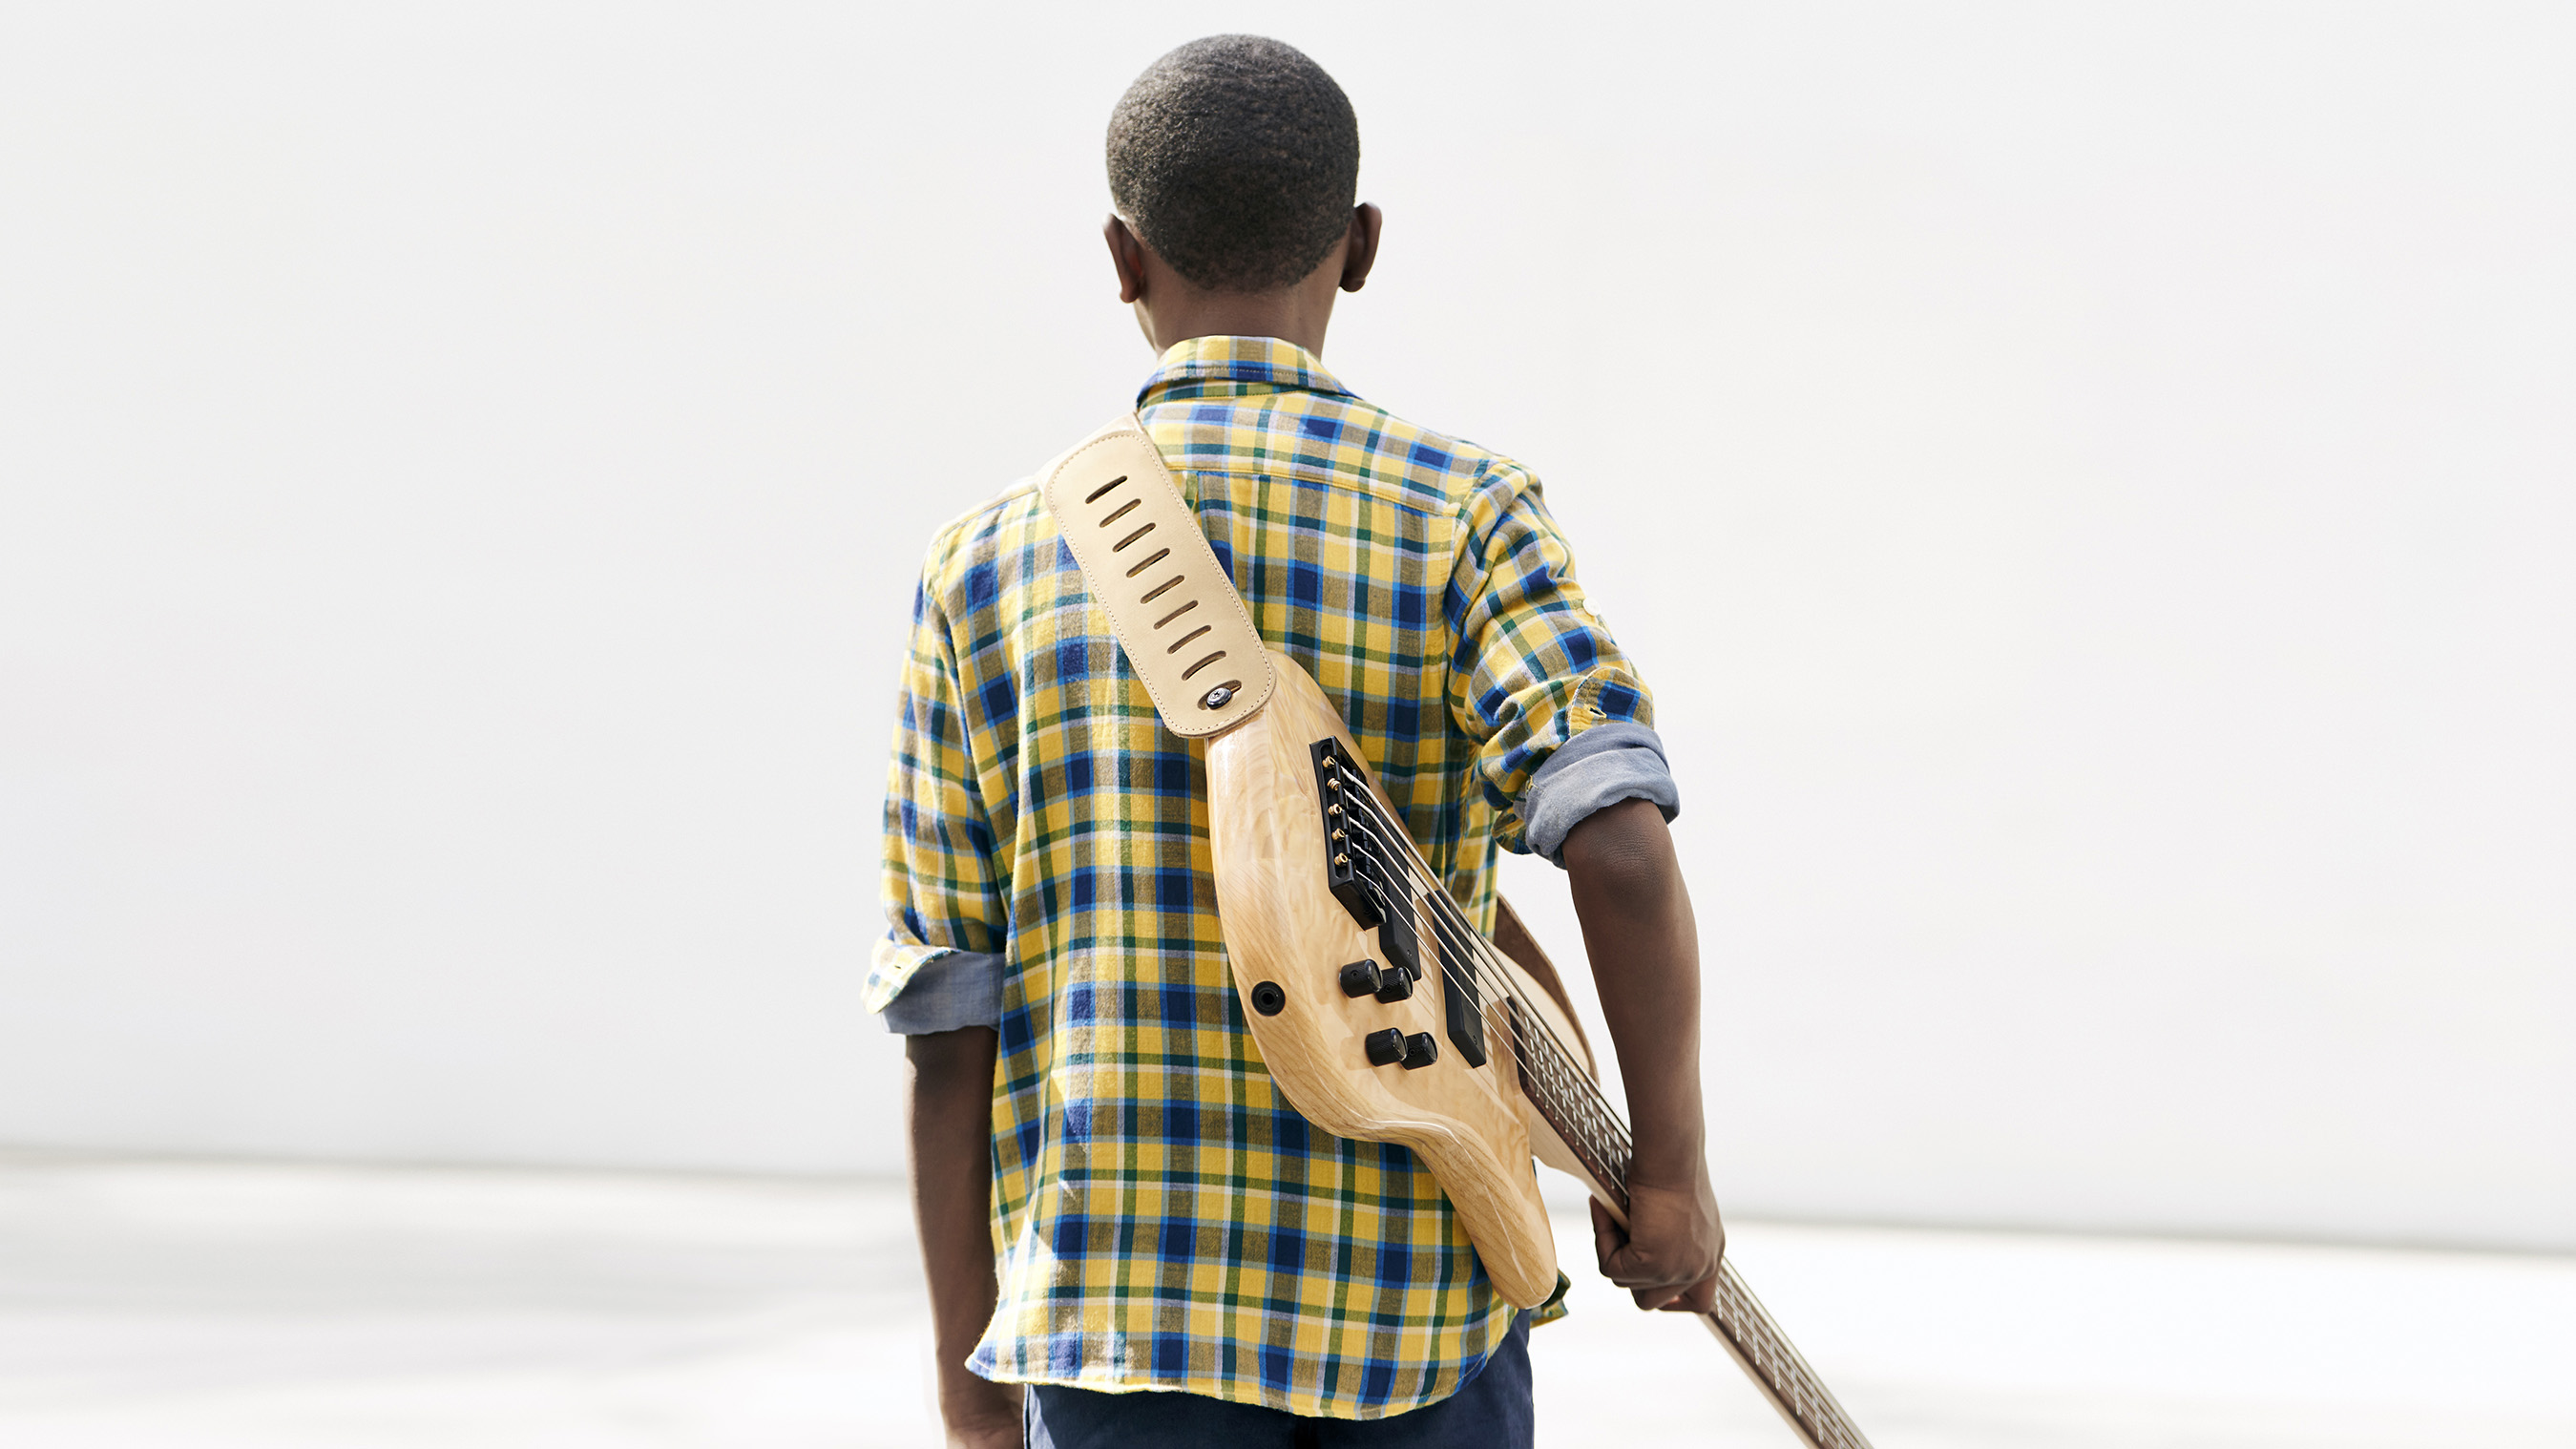 12-year-old bass guitarist @lilasmar hopes to inspire other kids to keep moving forward.